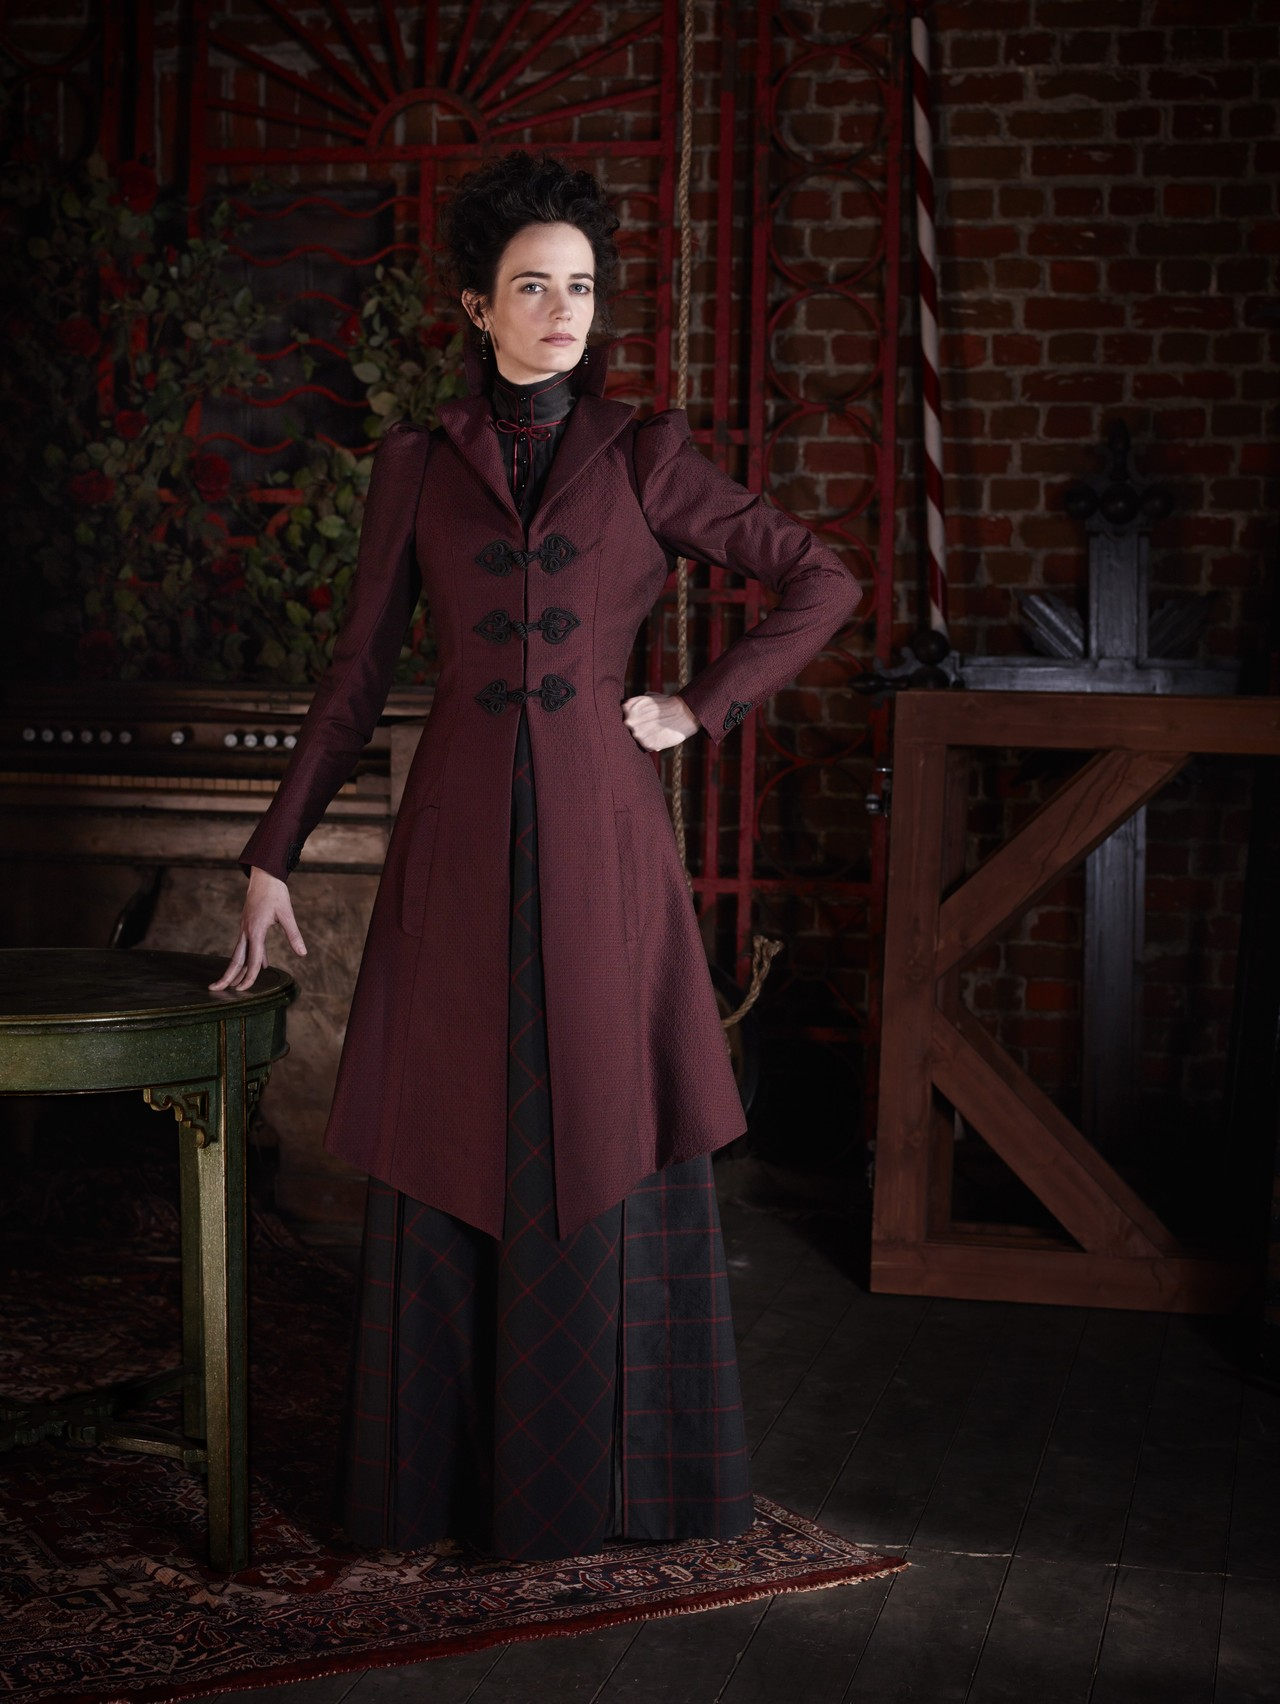 Dorian Gray Amp Vanessa Ives Images Vanessa Ives Hd Wallpaper And Background Photos 37379039